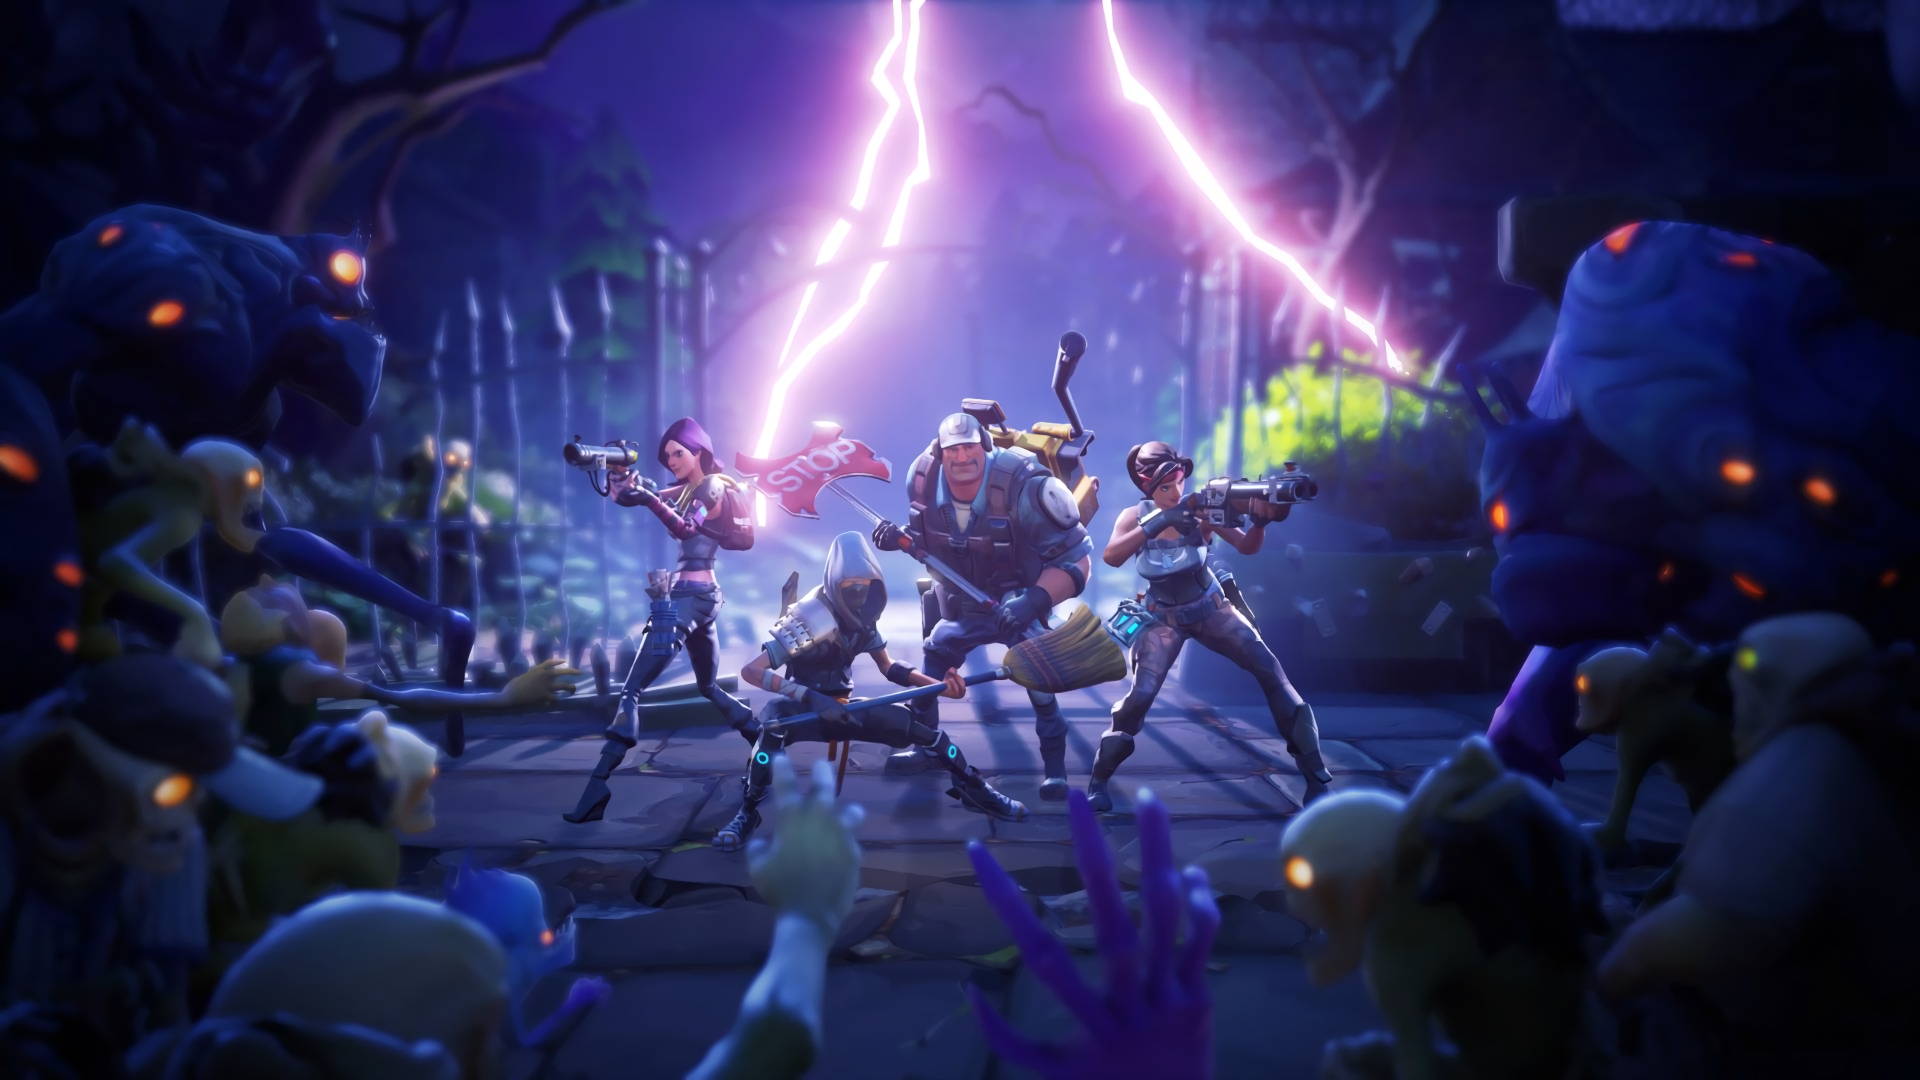 fortnite hd wallpaper 62265